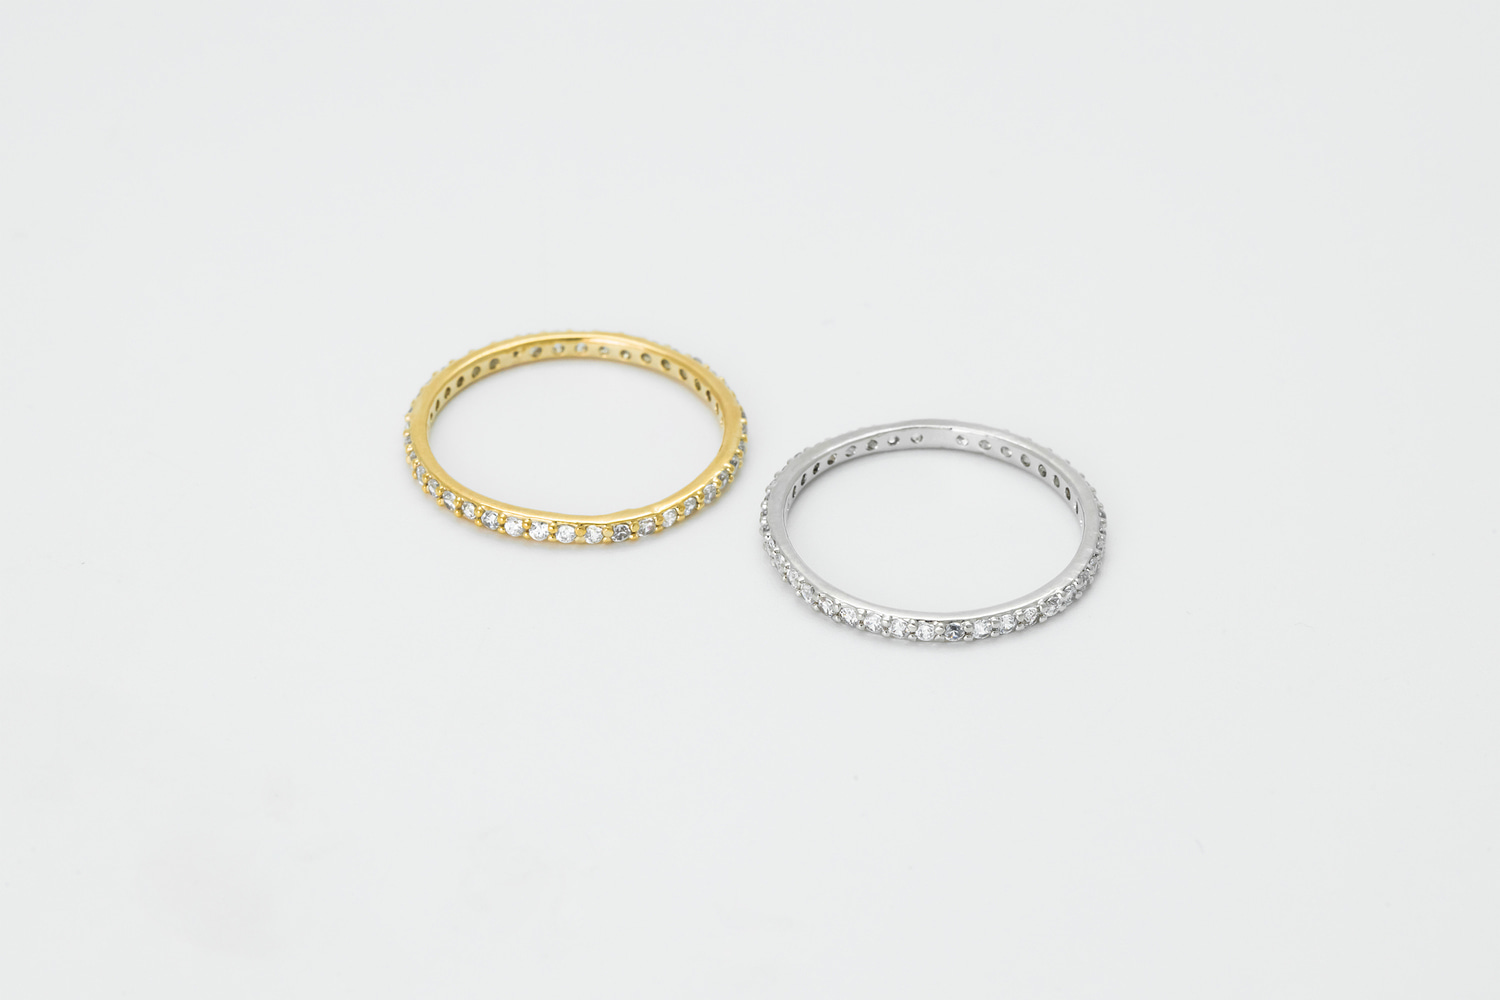 [RB20-08] Cubic ring, Brass, CZ, Nickel free, Handmade jewelry, Simple rings, Dainty ring, 1 piece per style